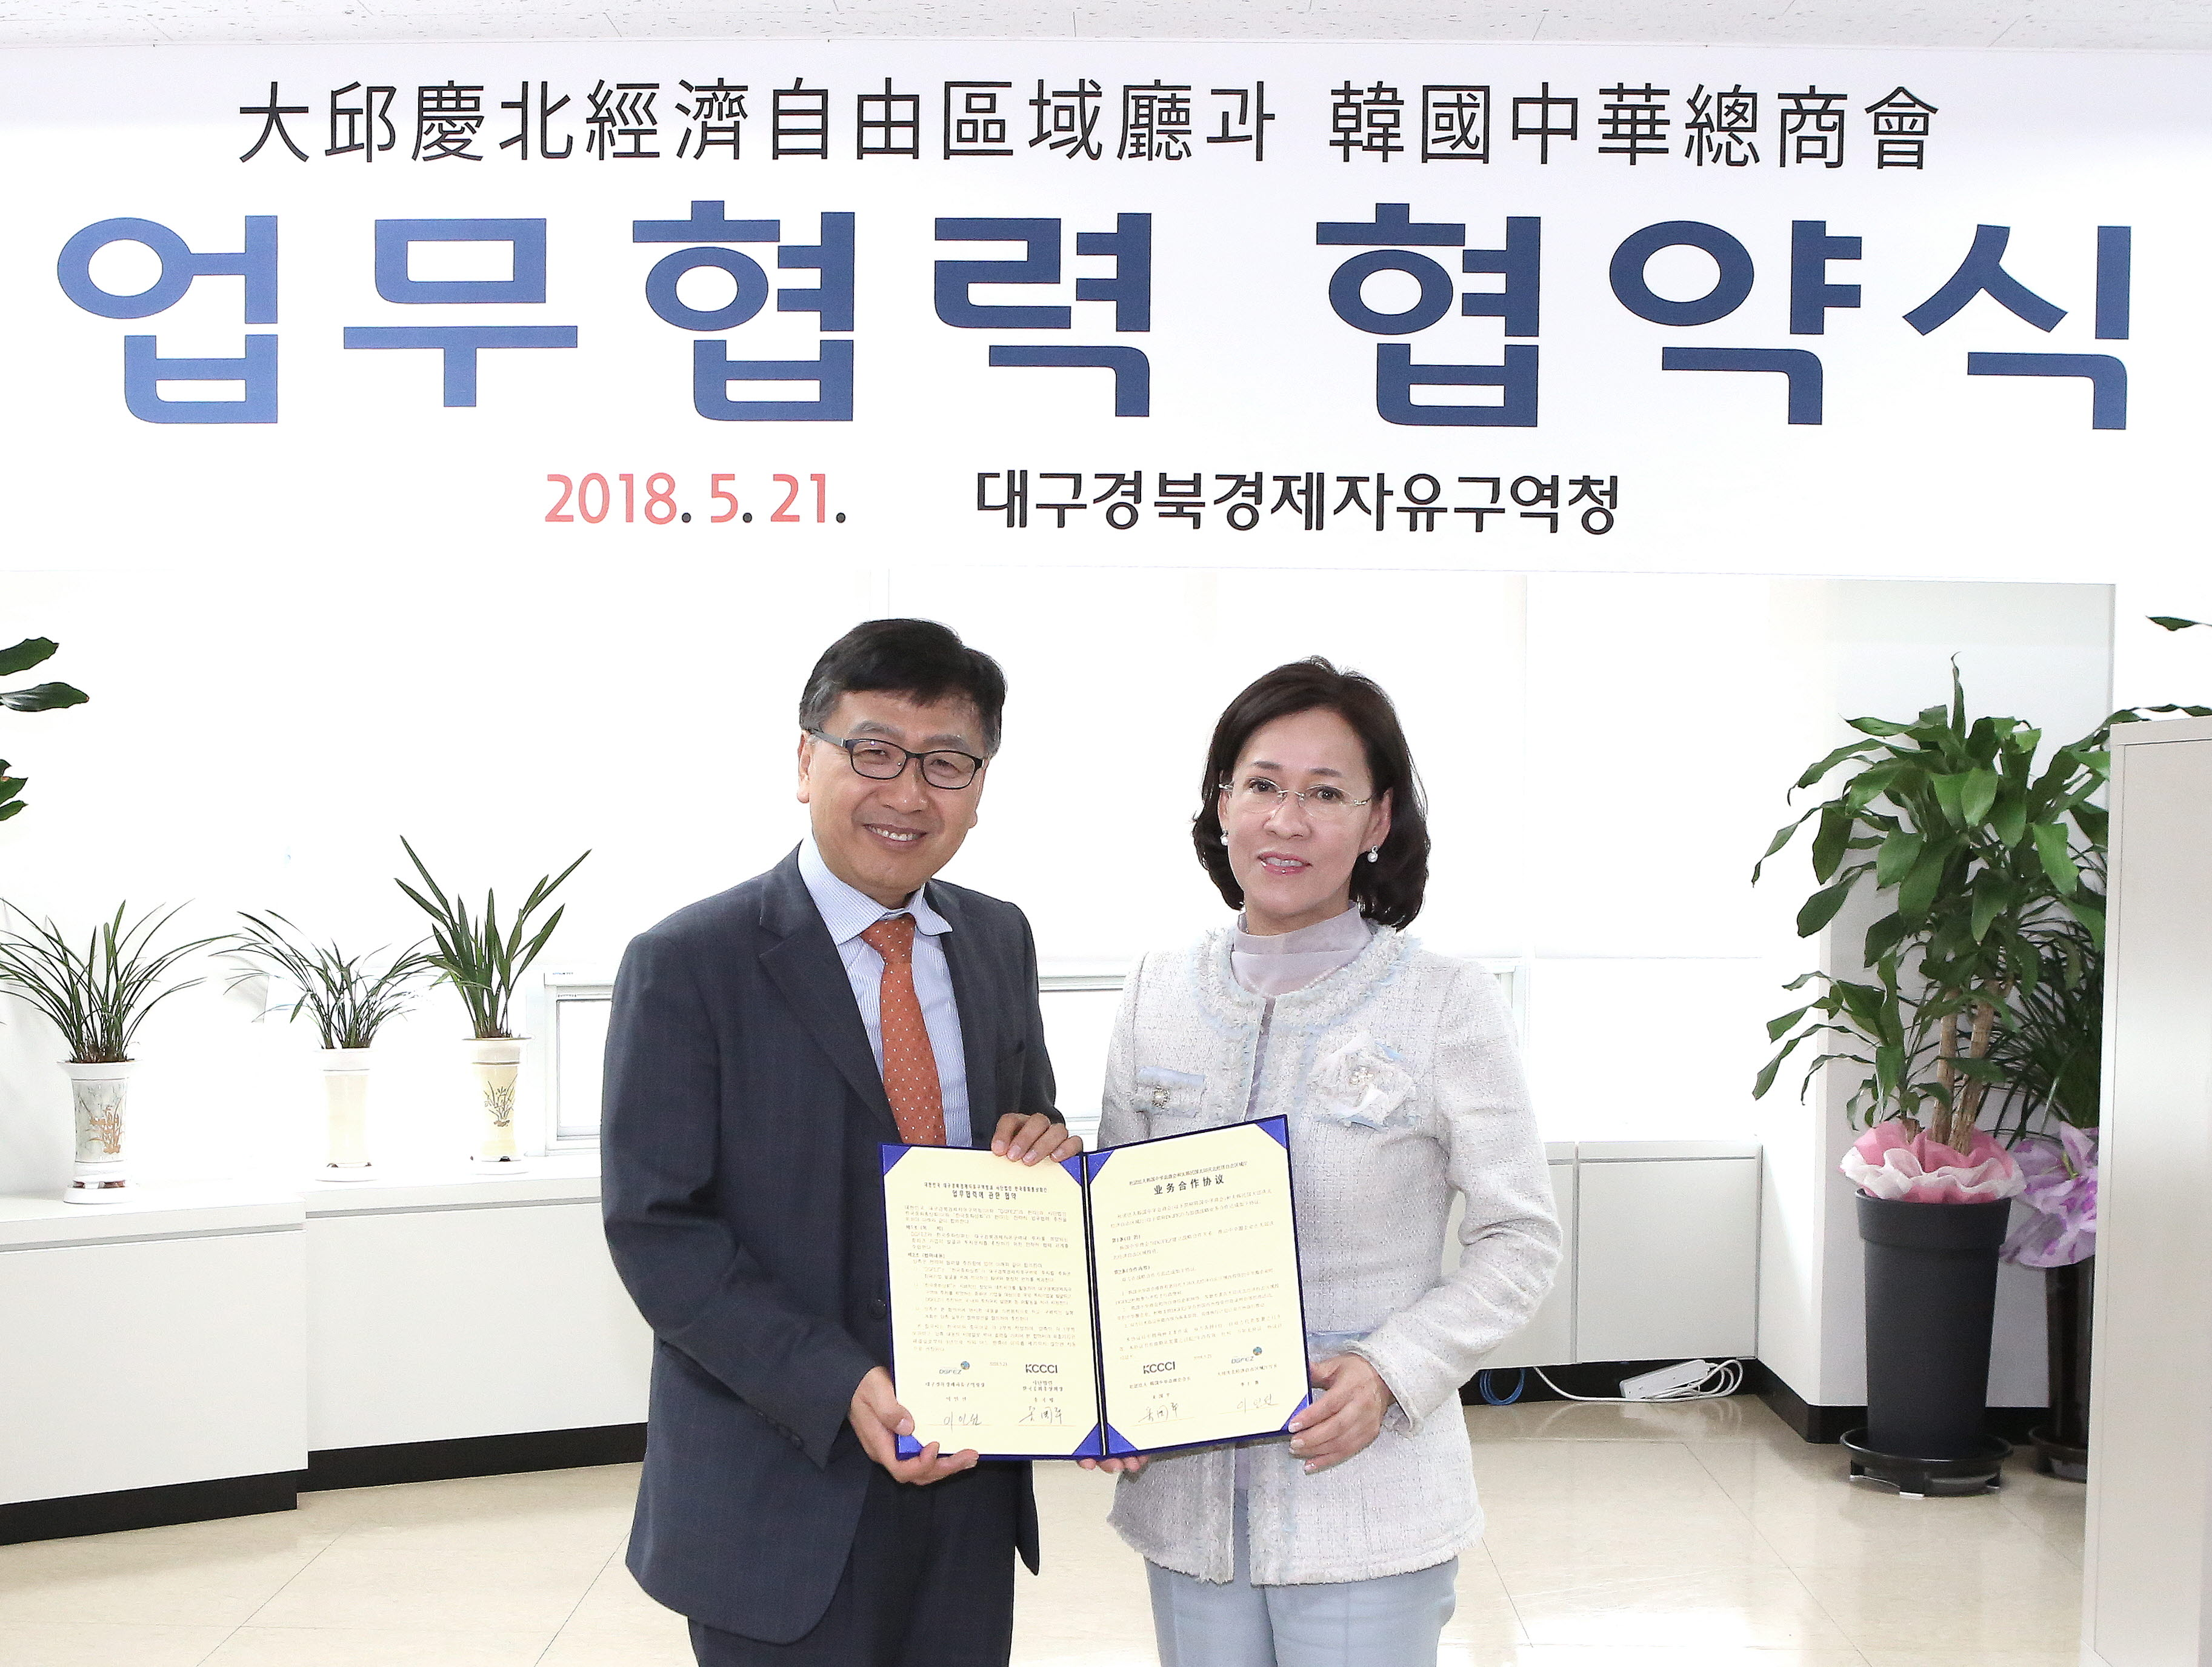 DGFEZ Signs Business Cooperation Agreement with Korea Chines...